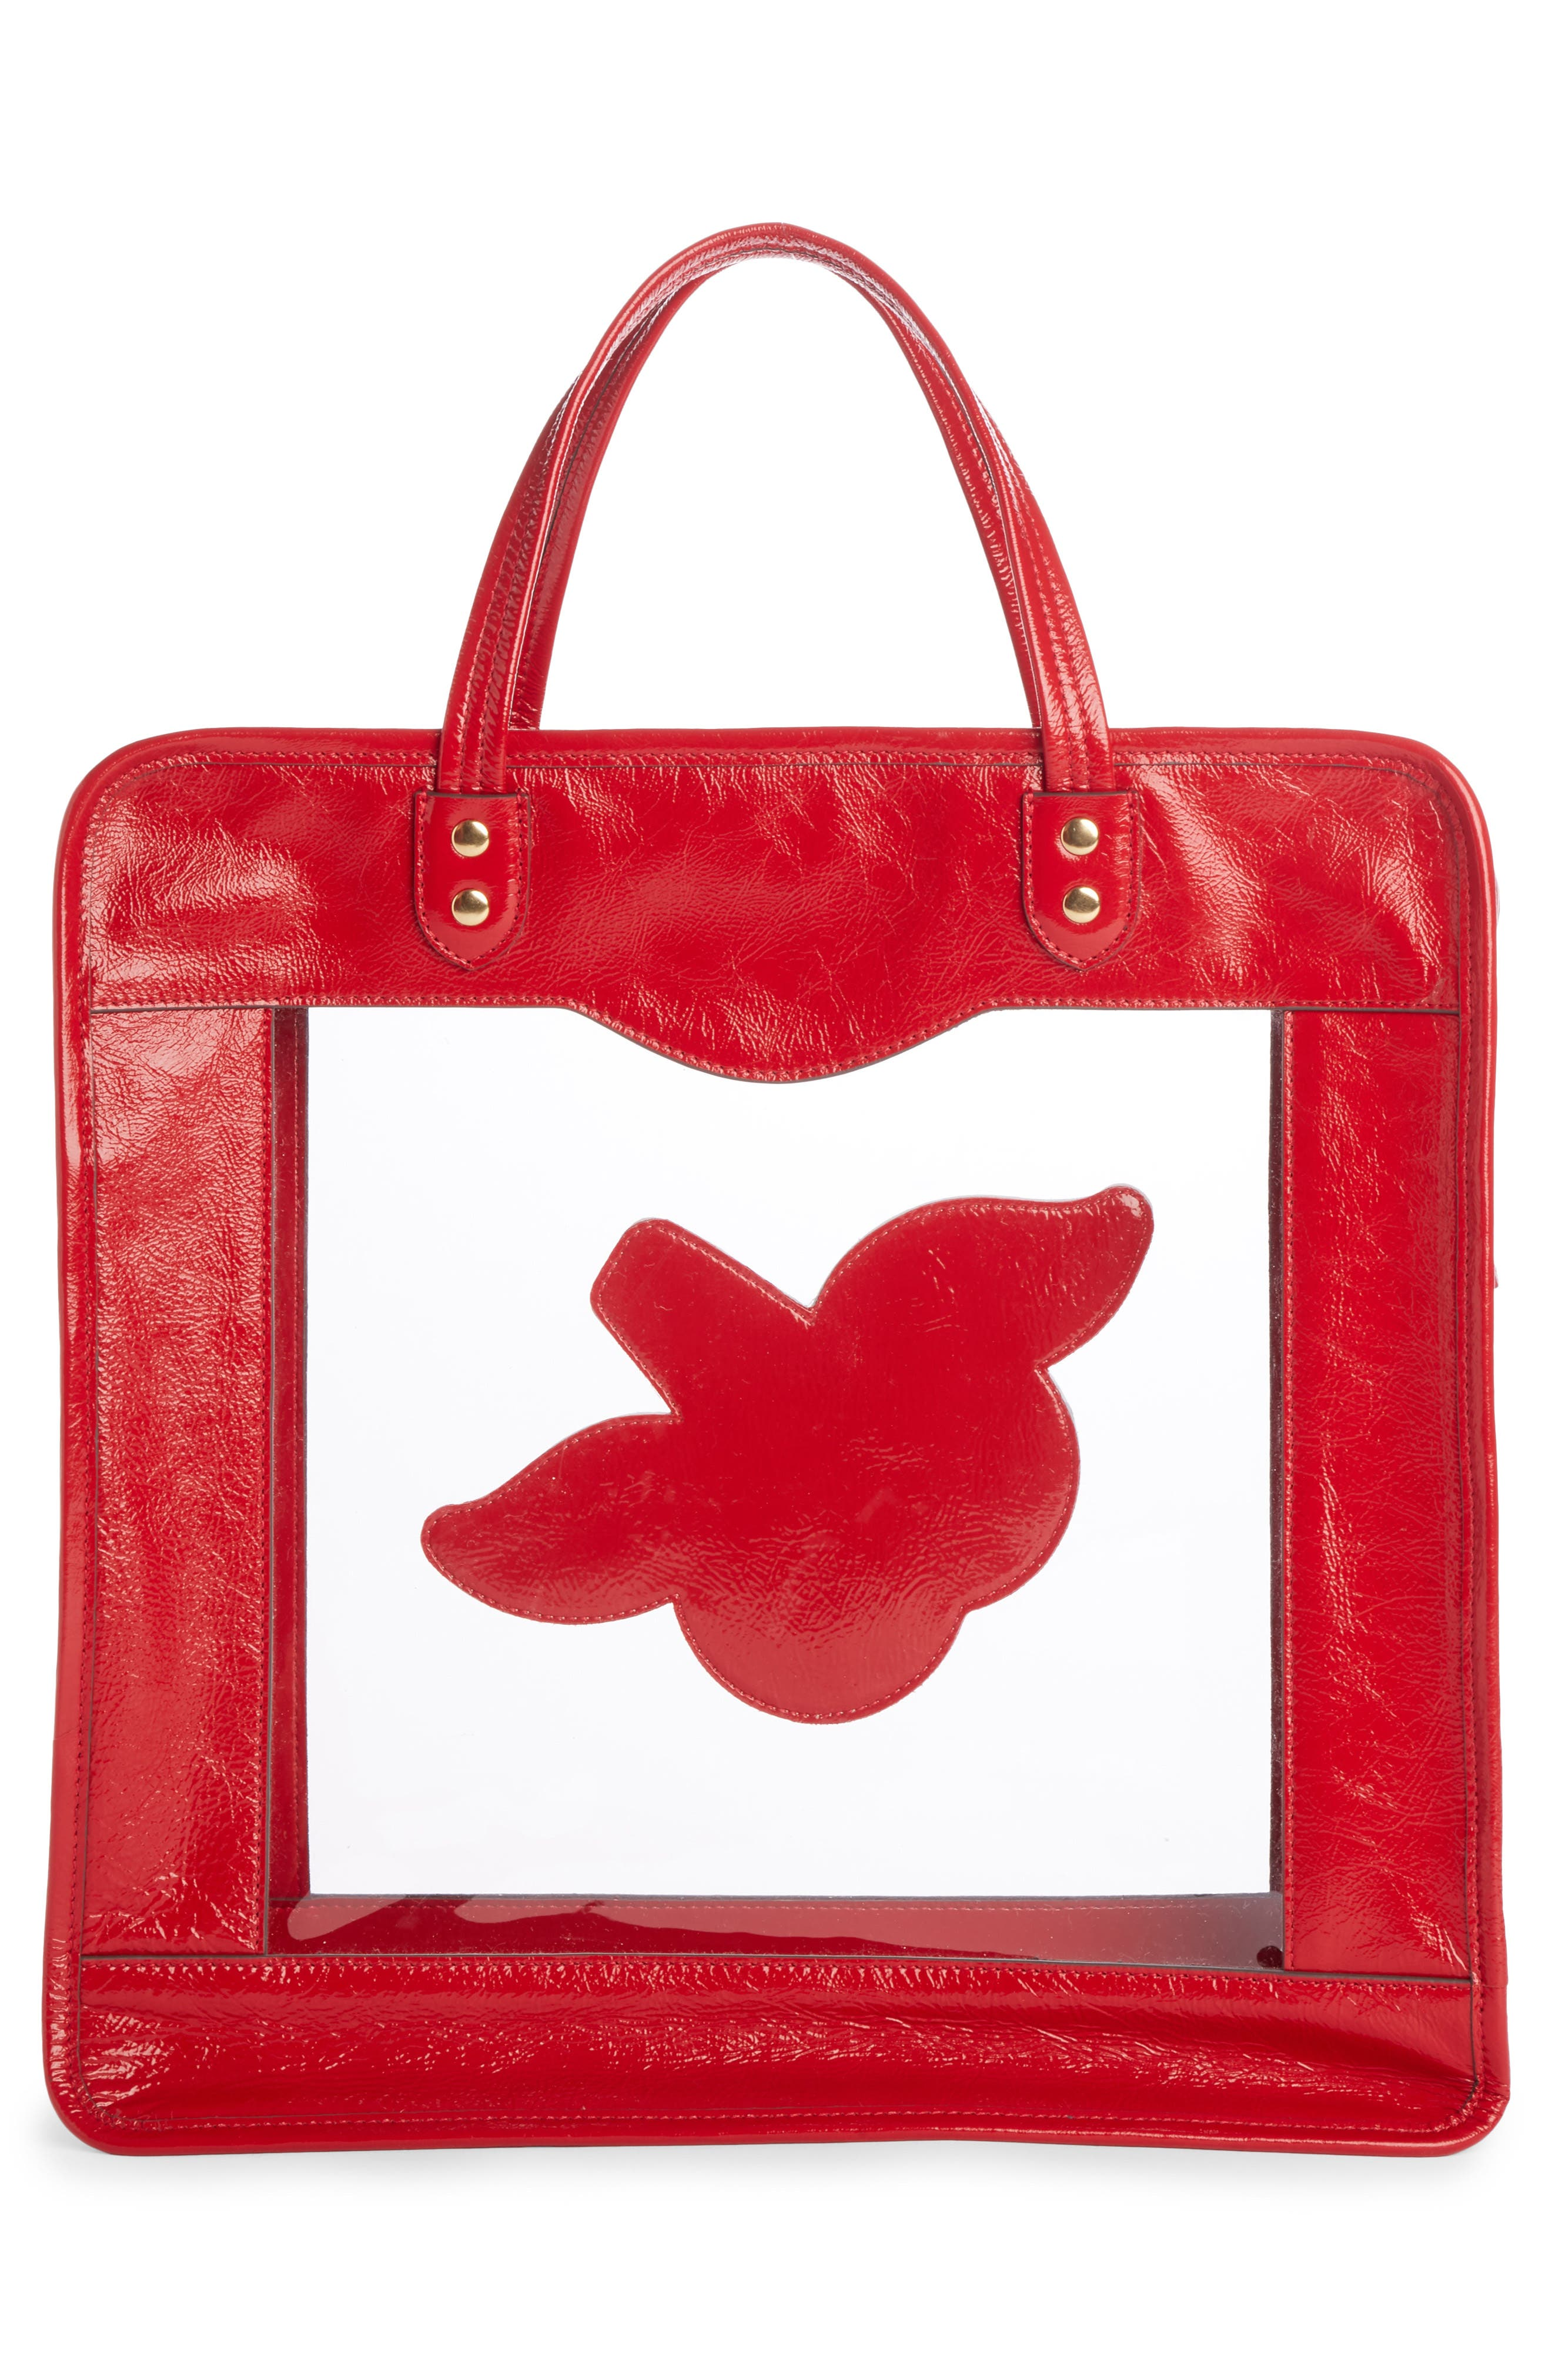 Rainy Day Cherries Tote,                             Alternate thumbnail 2, color,                             Red